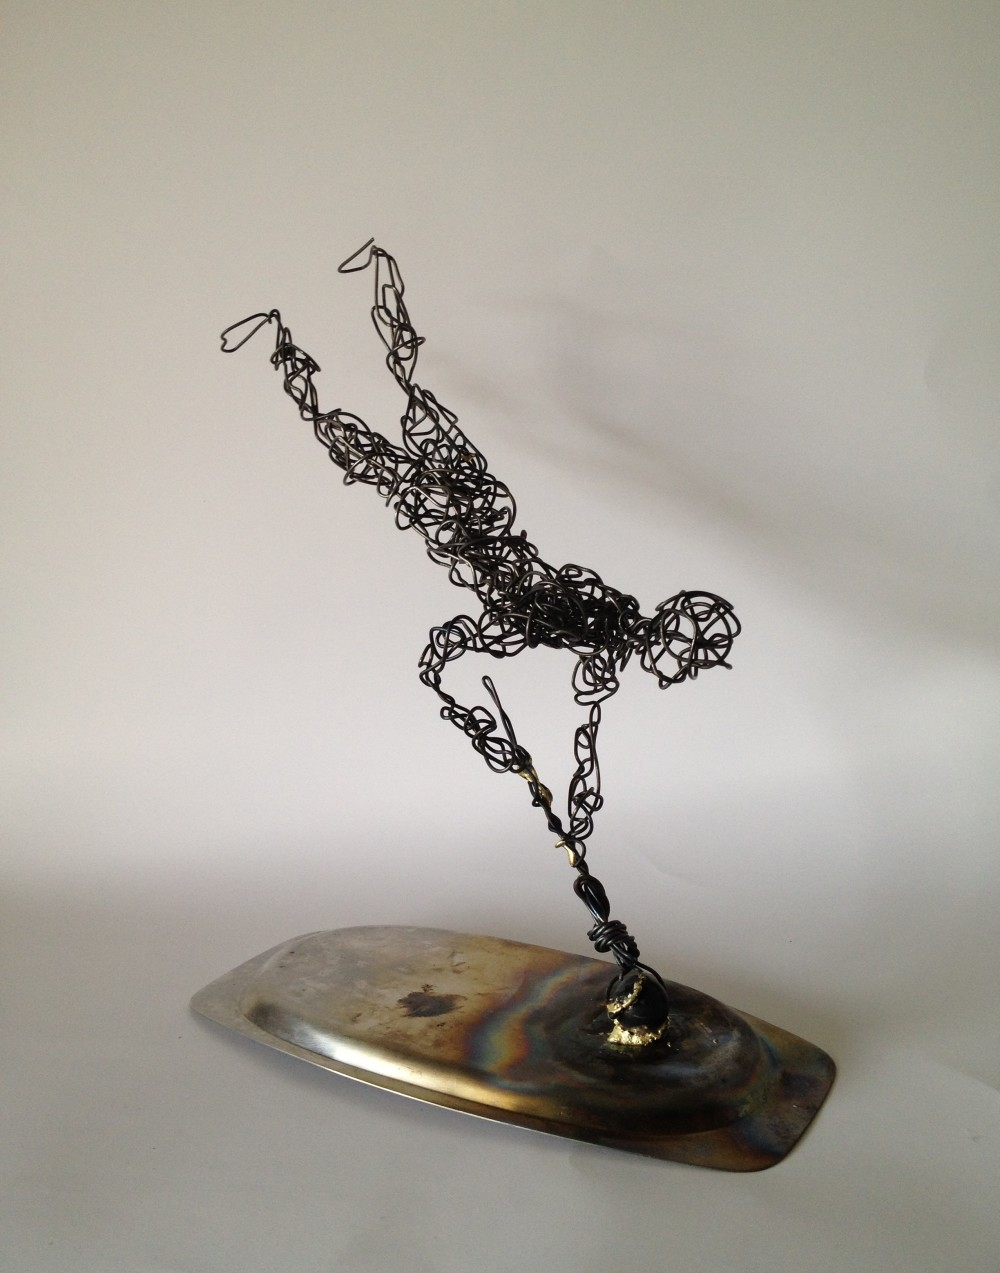 wire sculpture archives frank marino baker drip wire art